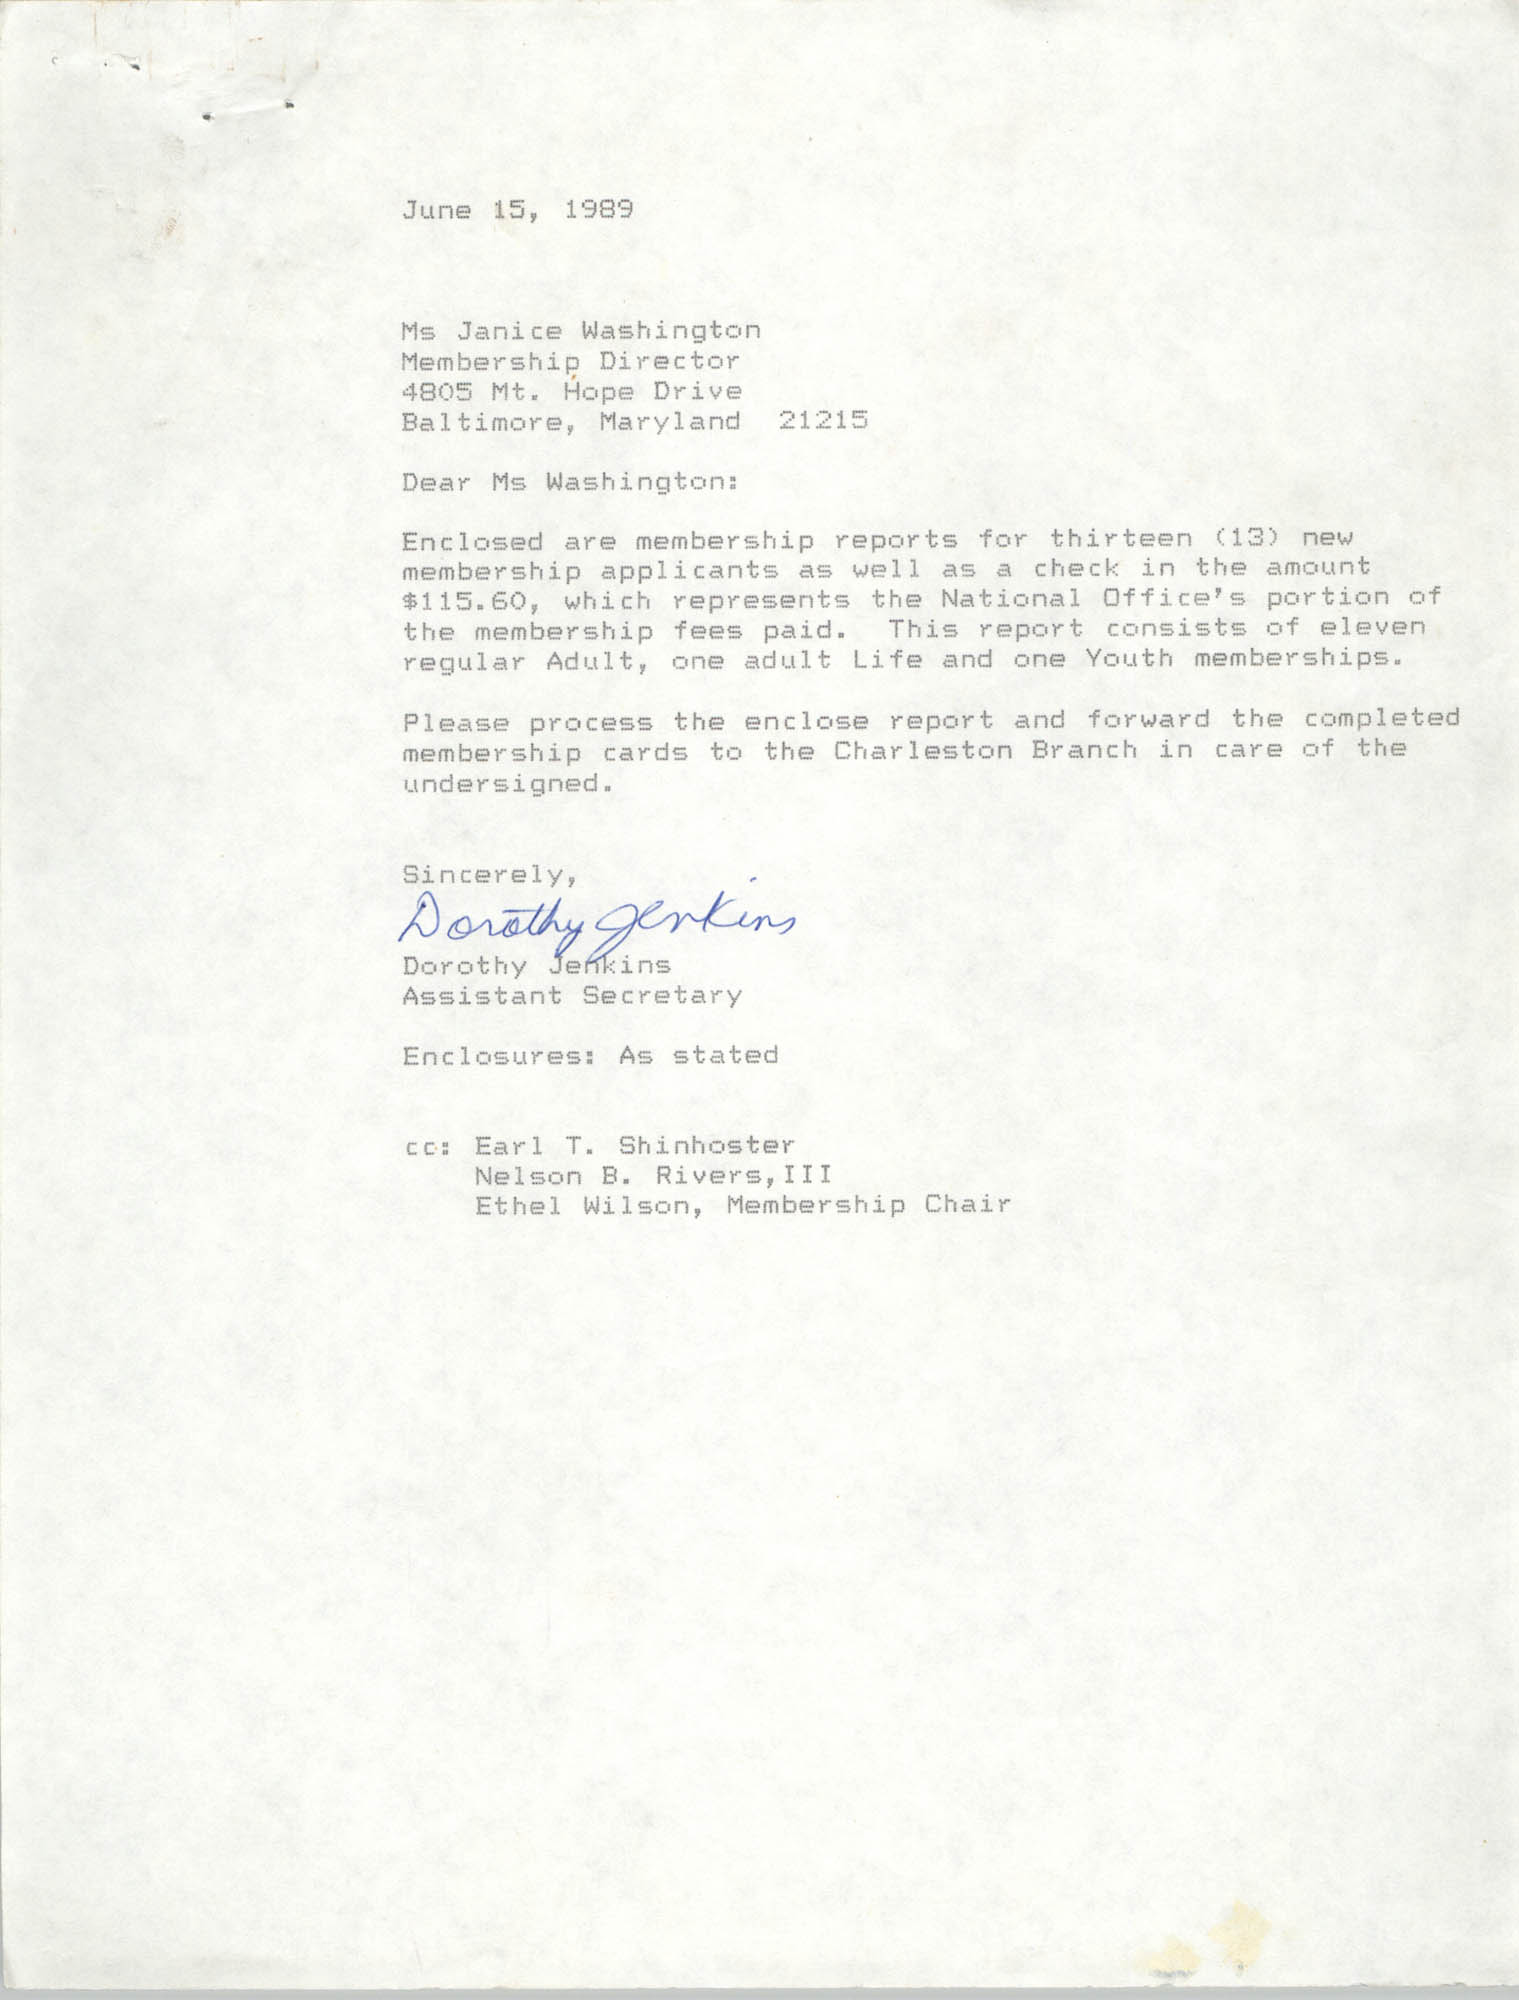 Letter from Dorothy Jenkins to Janice Washington, NAACP, June 15, 1989